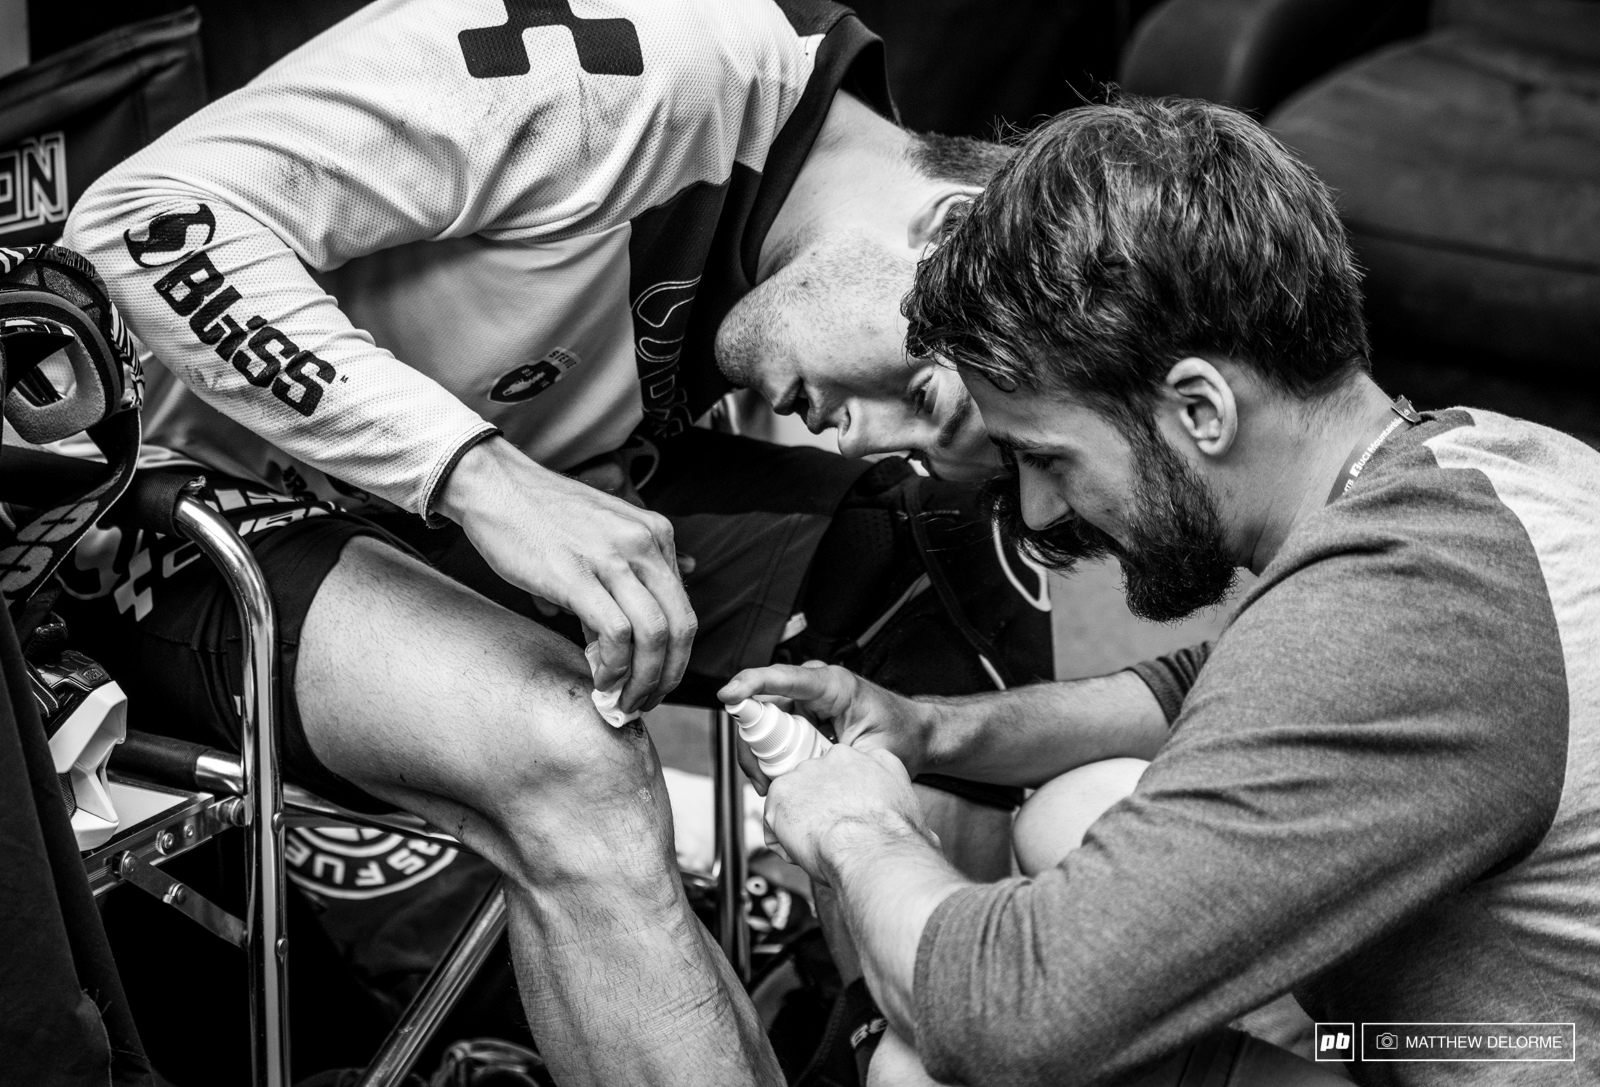 Greg Williamson tending to stitches from a crash on Friday practice.